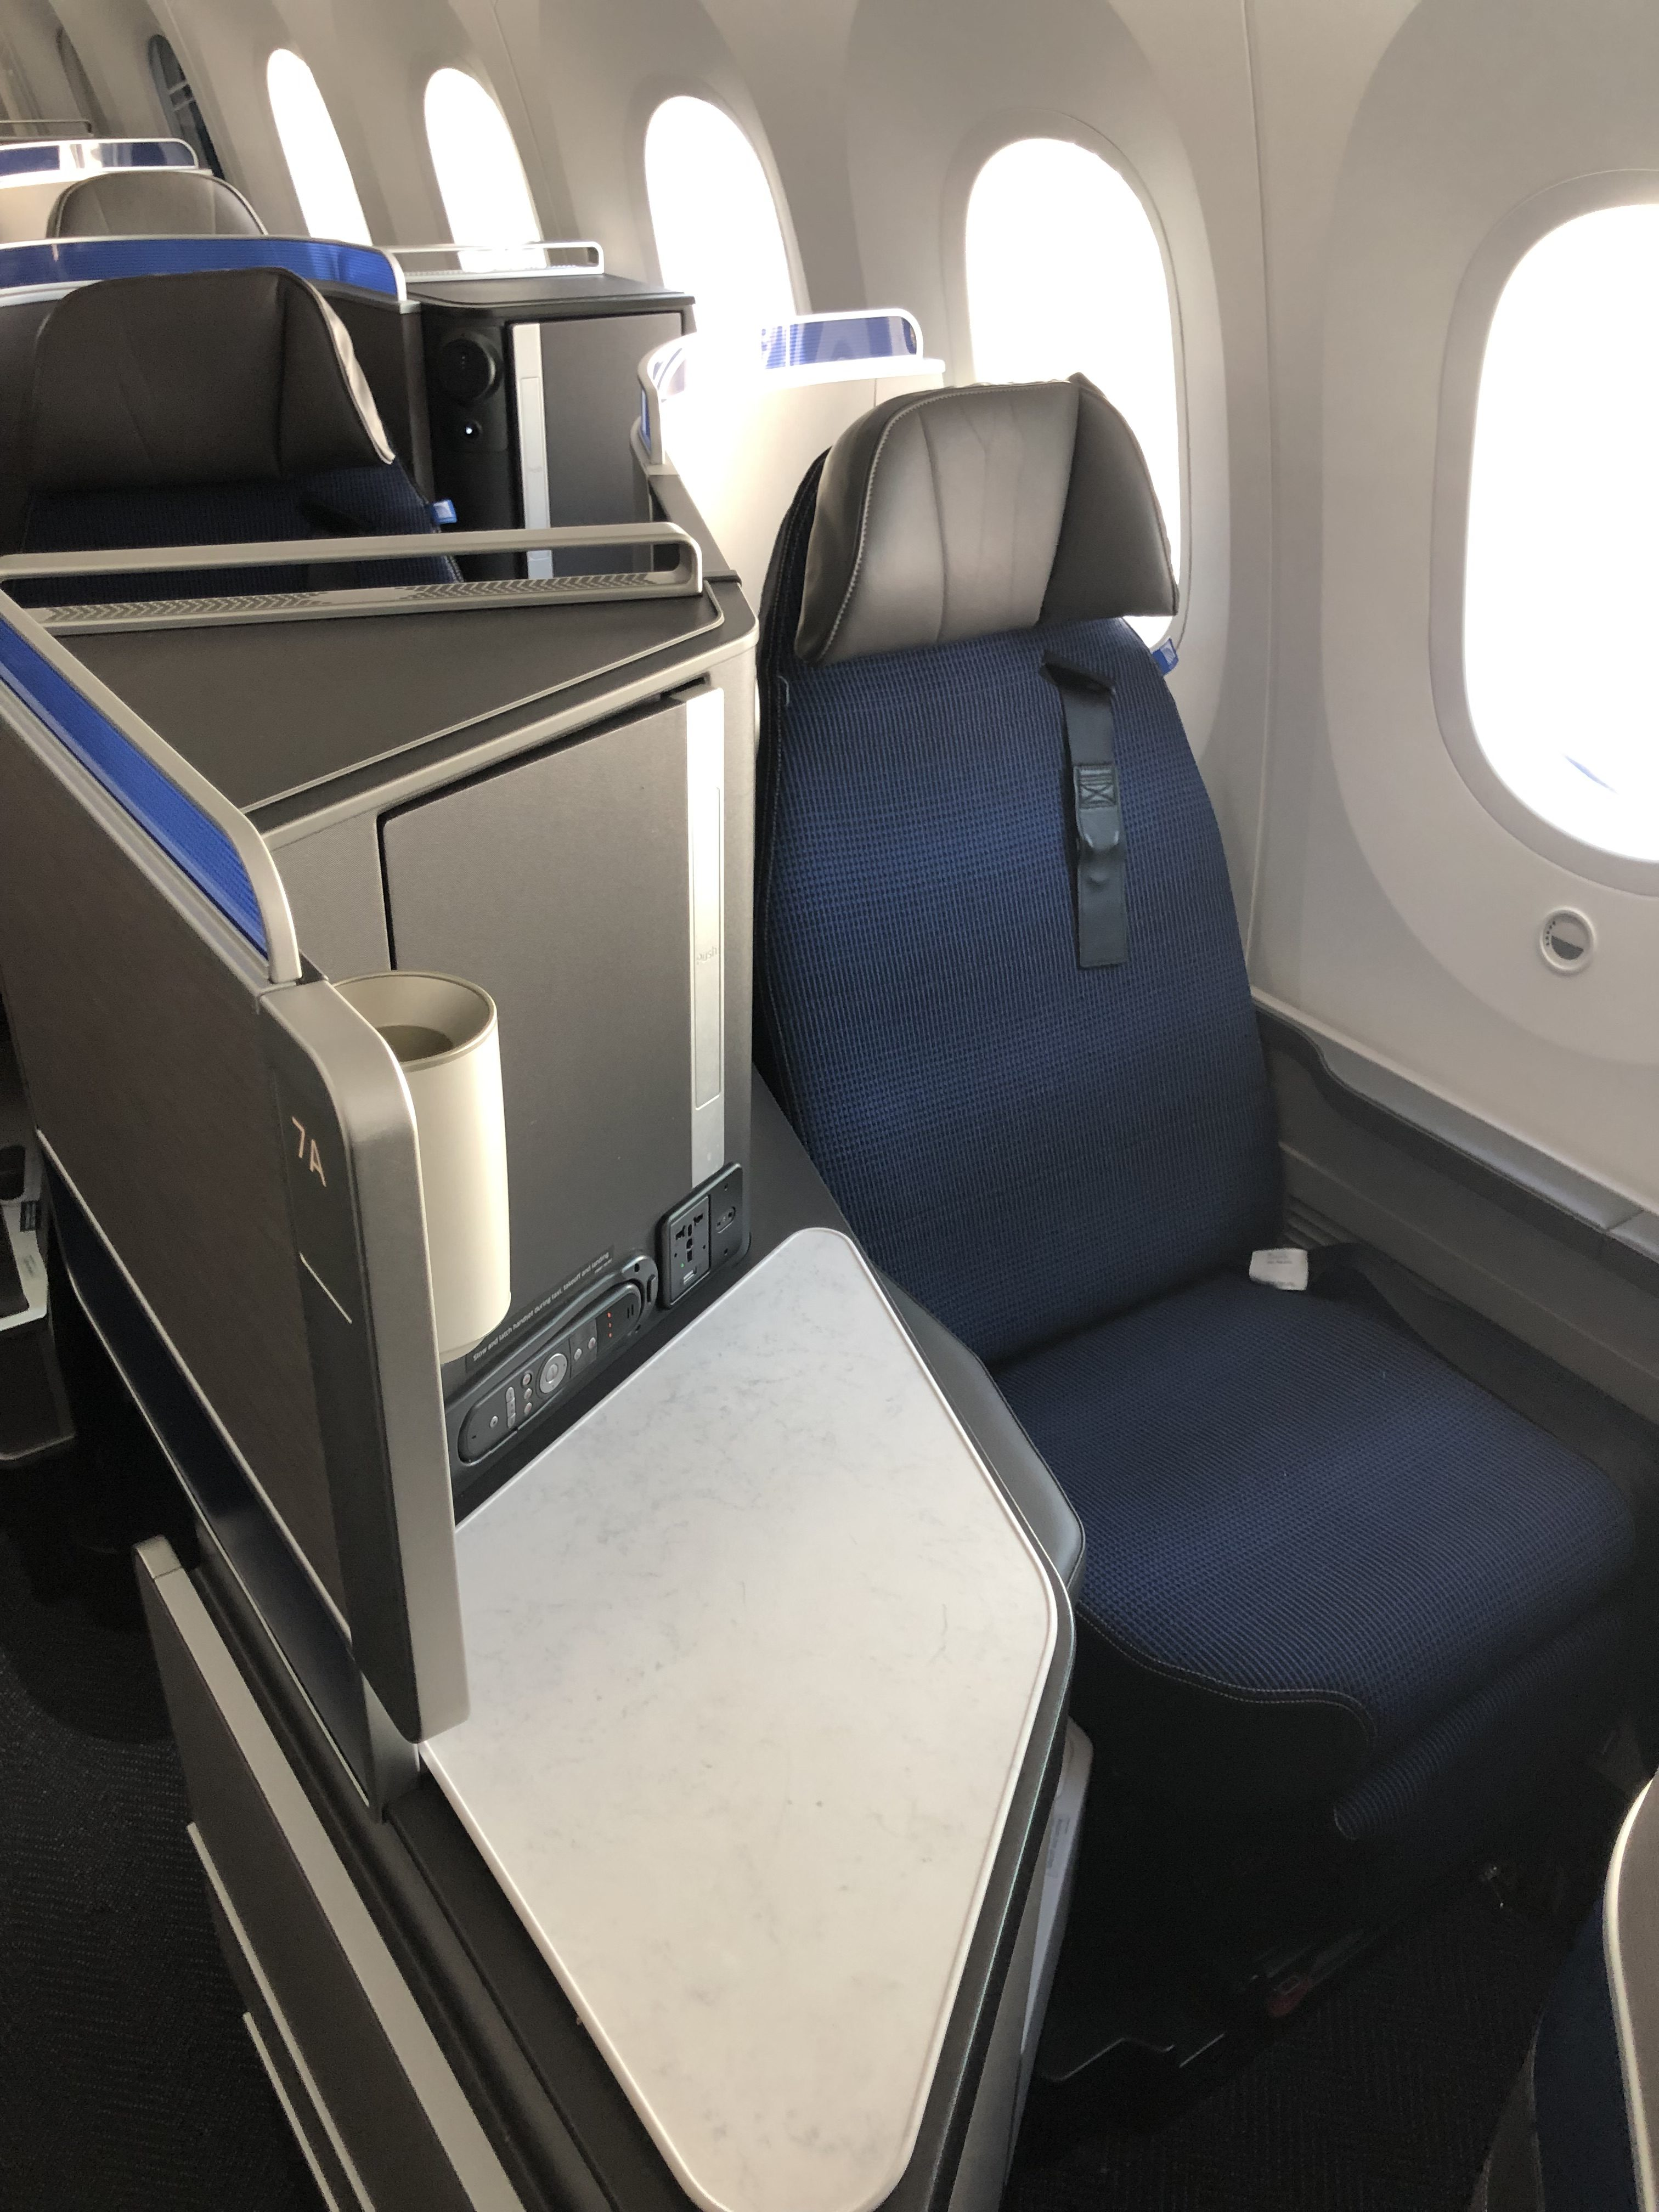 United 787-10 Polaris Business Class Review - LAX to IAH [Detailed]